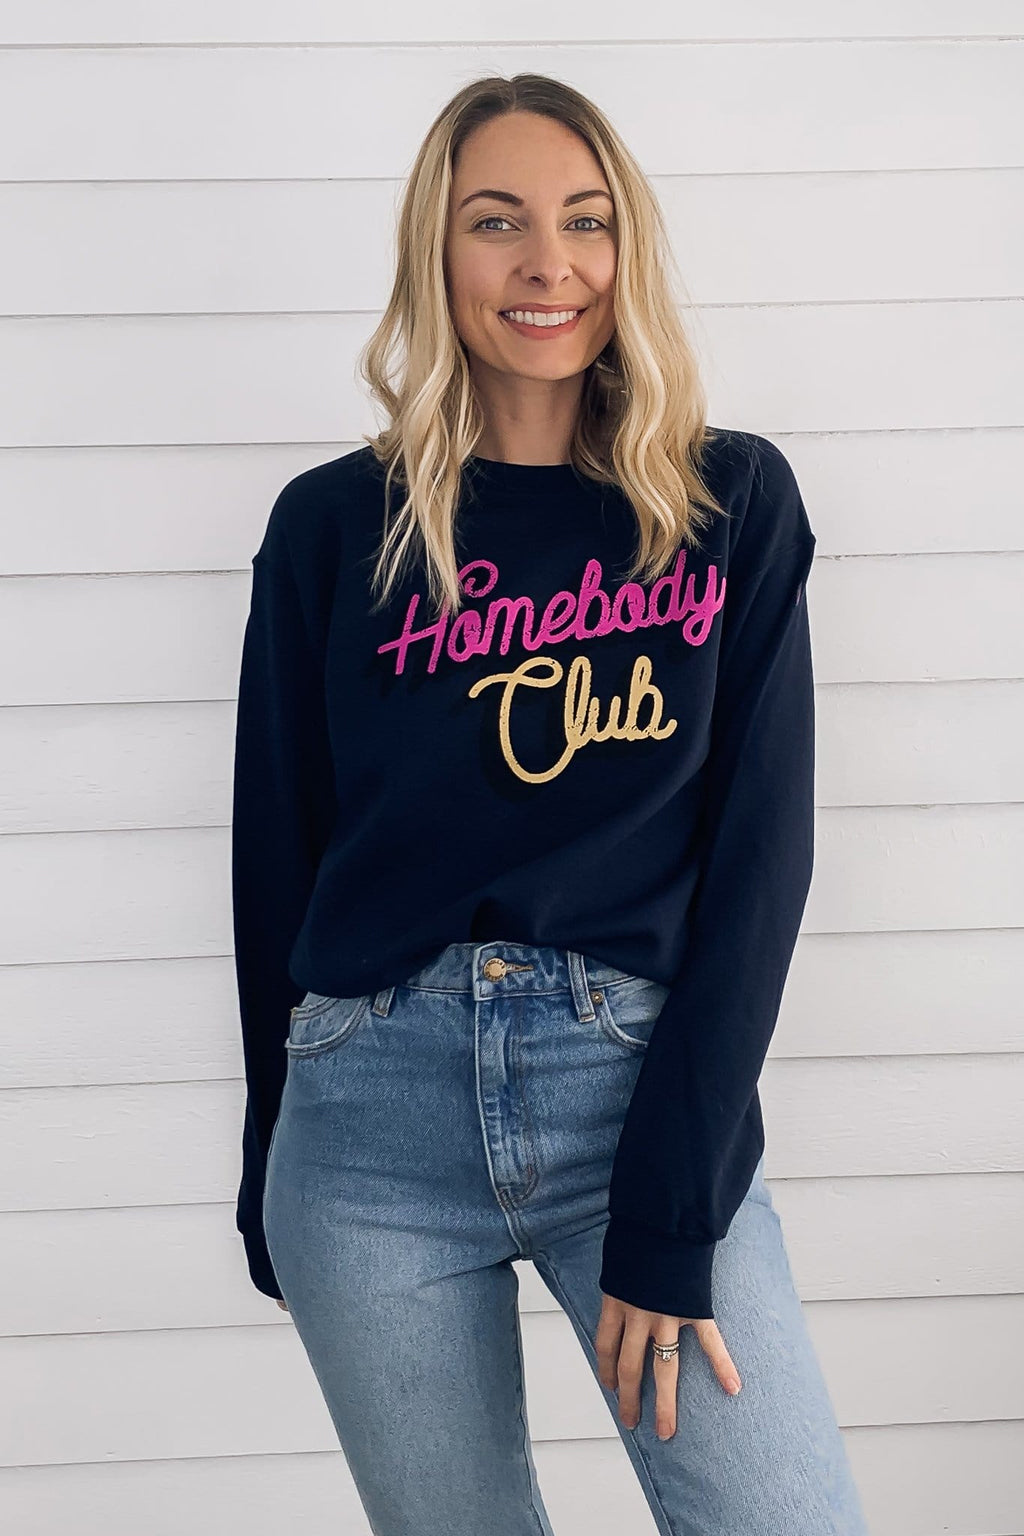 Homebody Club Sweatshirt - Navy